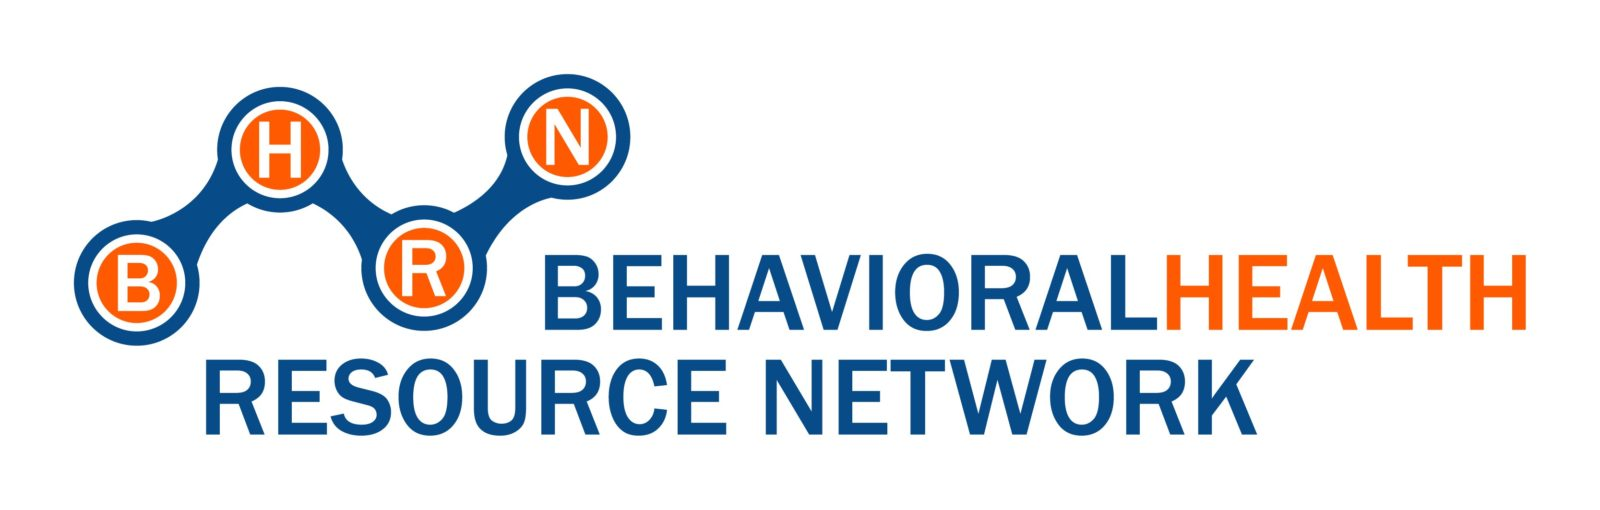 Behavioral Health Resource Network